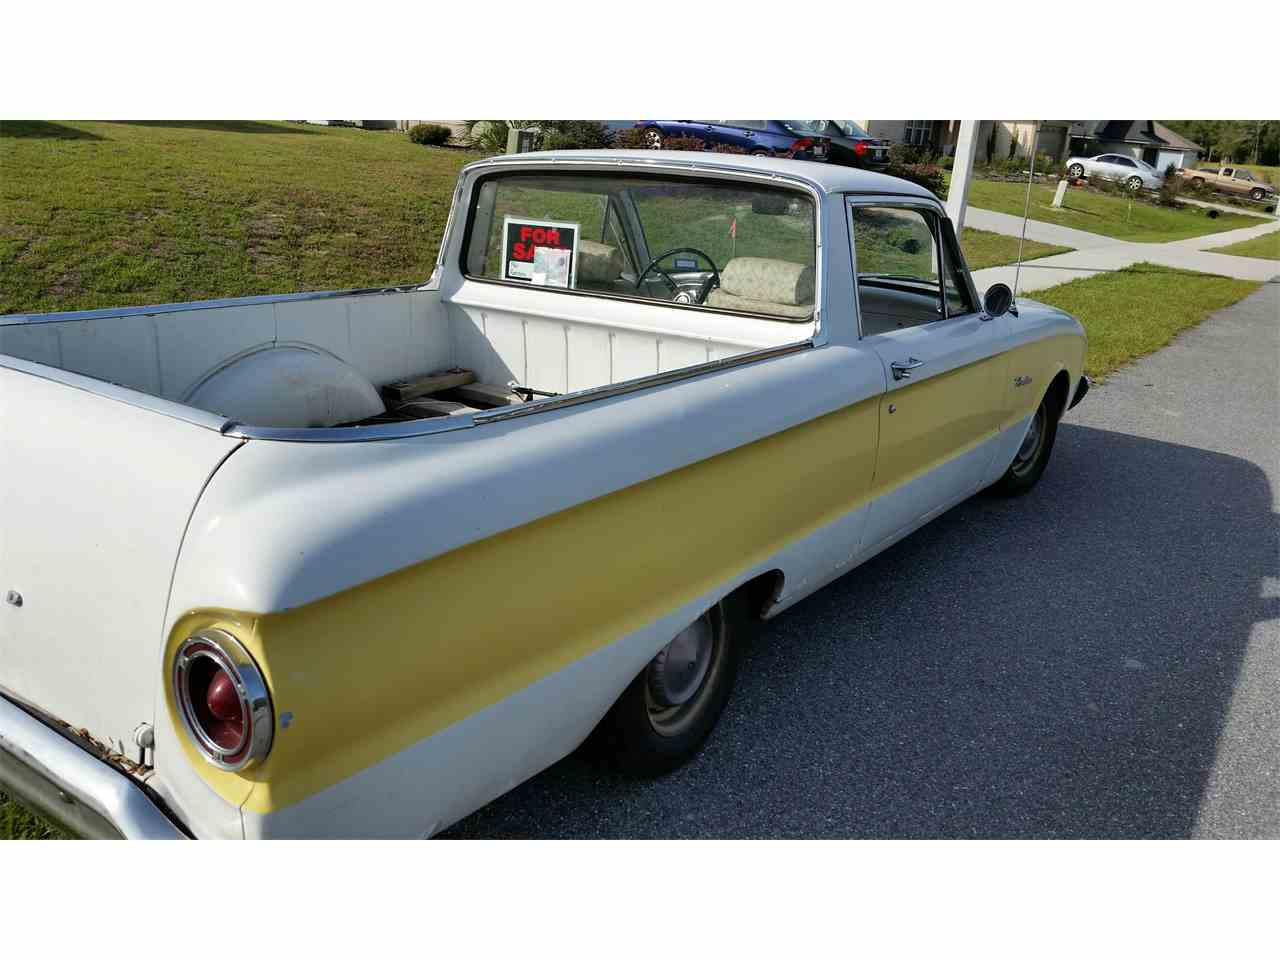 Large Picture of Classic '61 Ford Ranchero located in High Springs Florida - $4,900.00 Offered by a Private Seller - KBA5